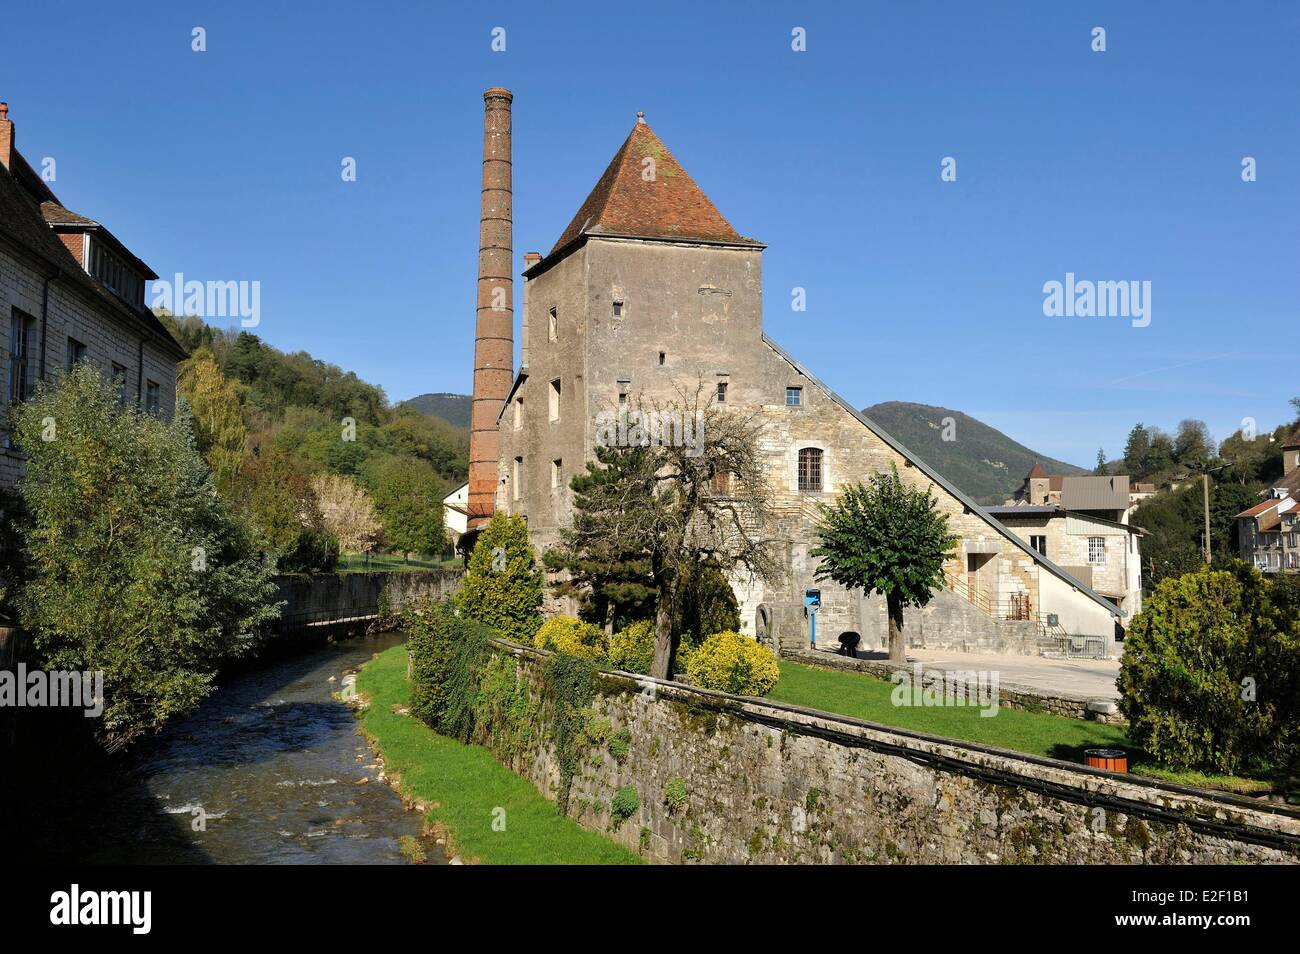 France Jura Saltworks Of Salins Les Bains Listed As World Heritage Stock Photo Alamy